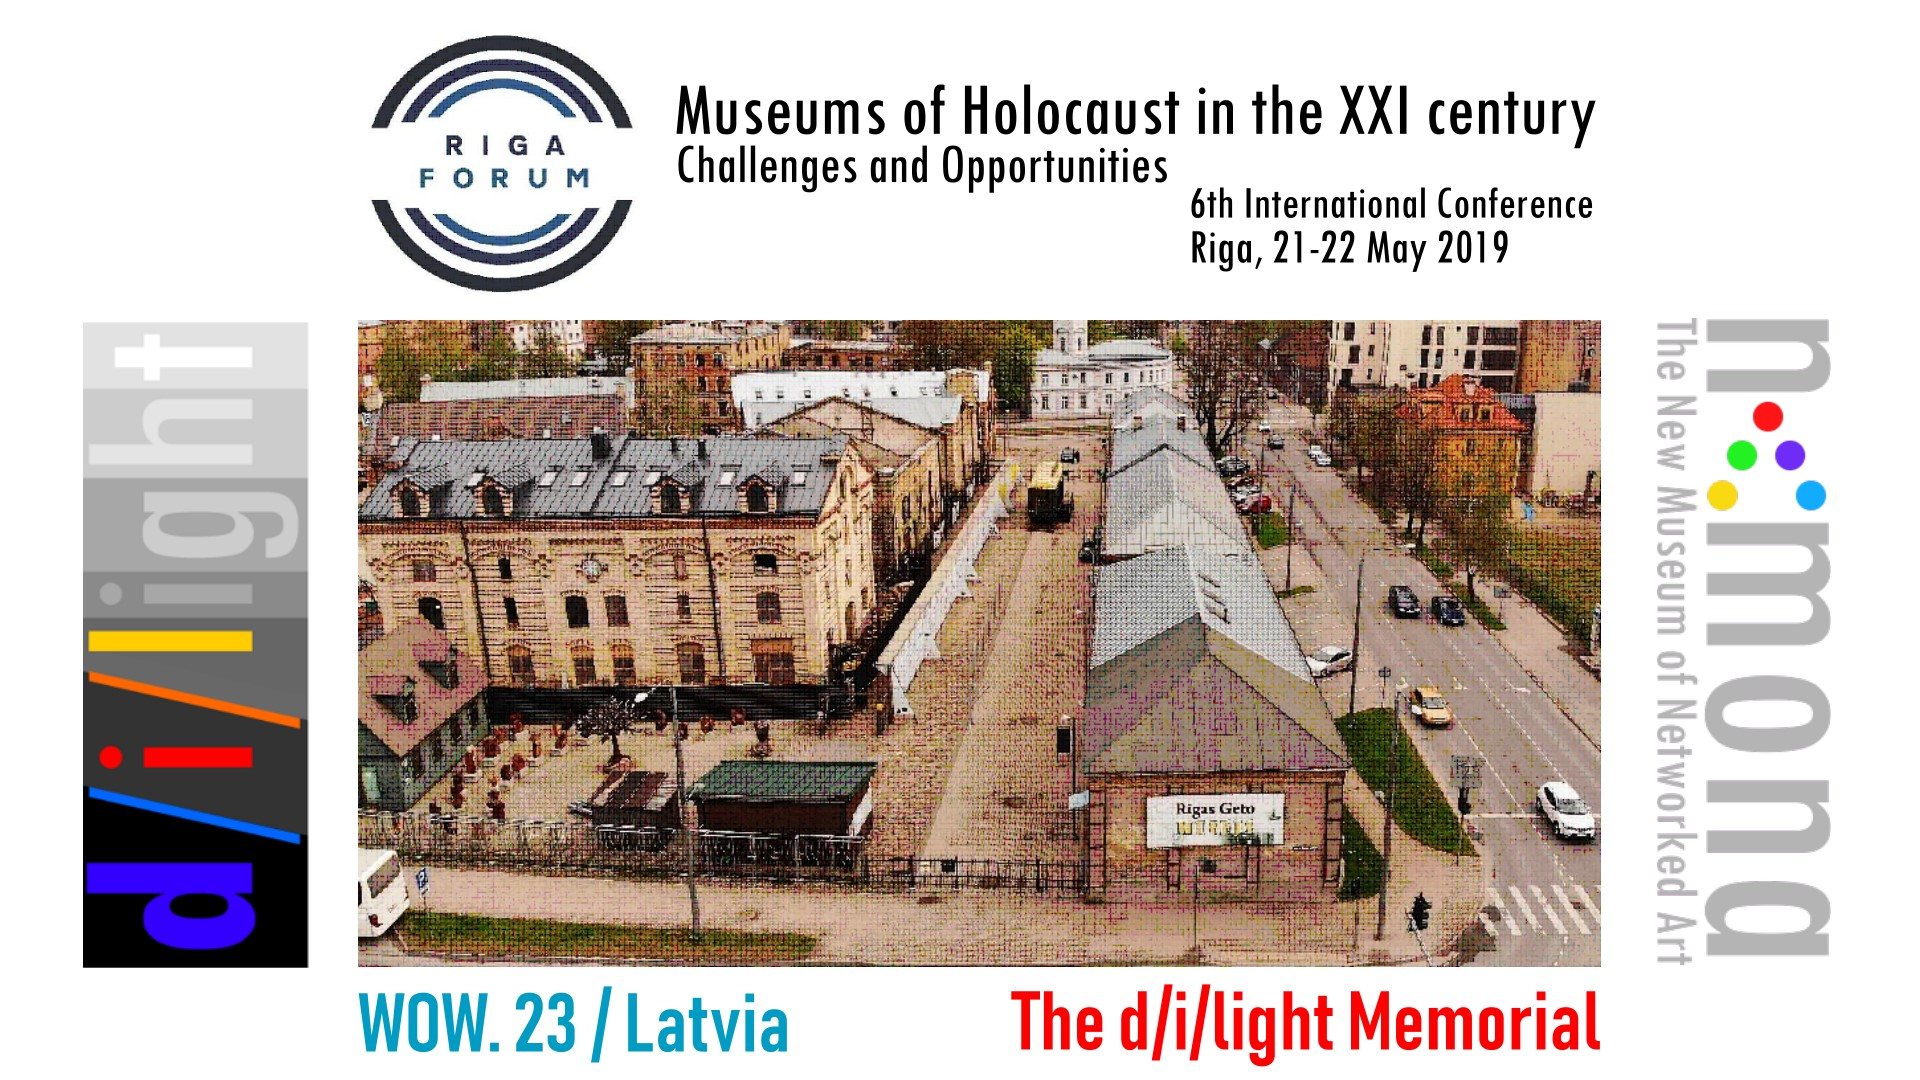 21-22 May 2019 – d/i/light Memorial in Riga